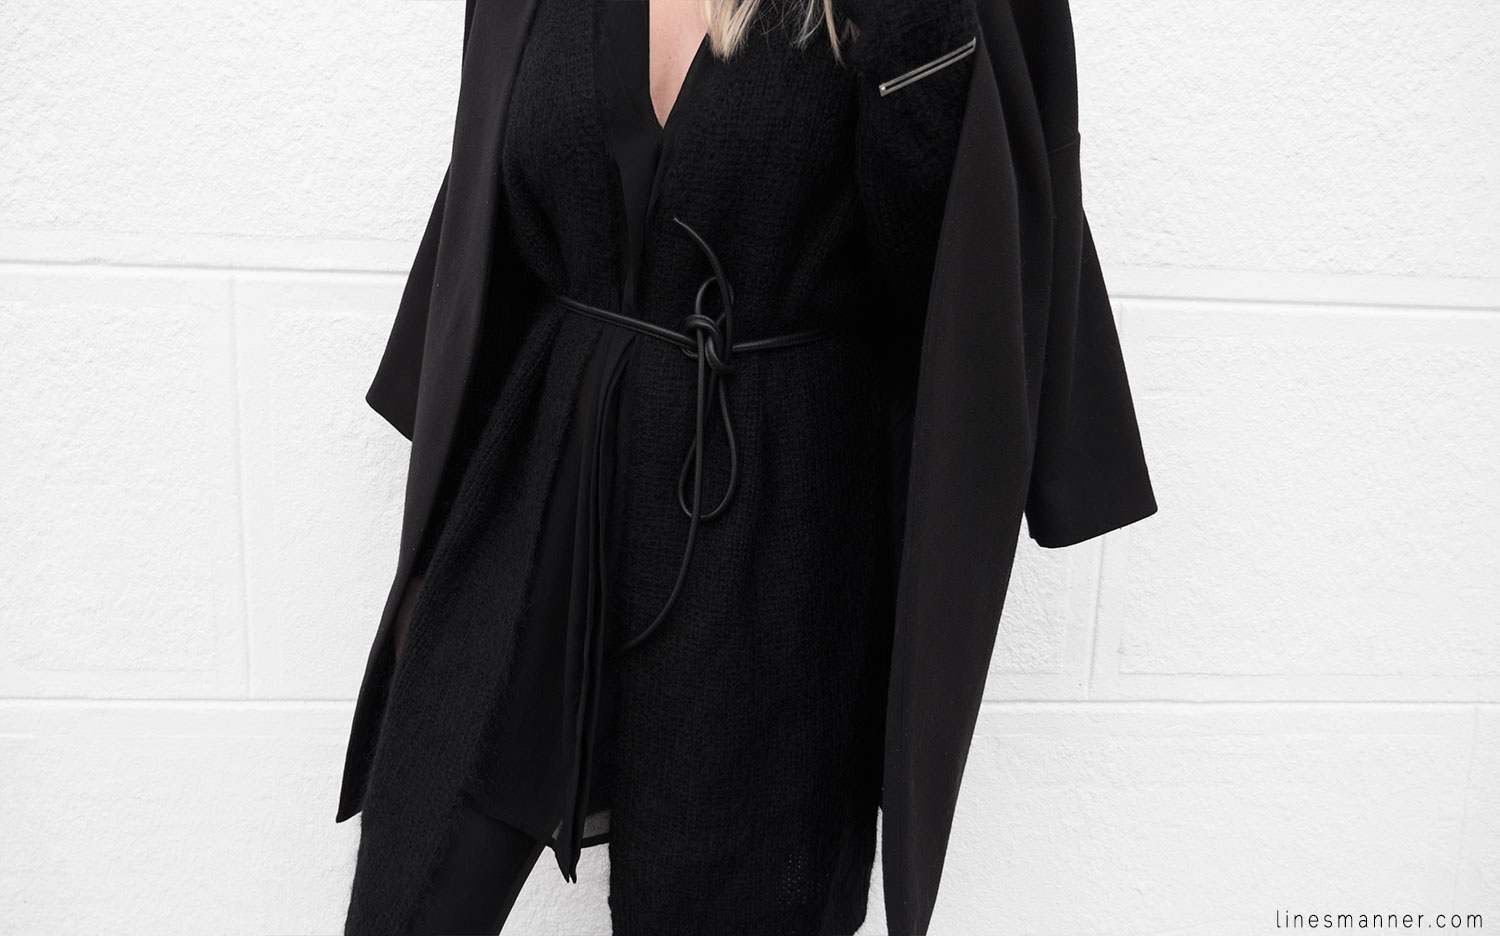 Lines-Manner-Timeless-Comfort-Essentials-Monochrome-Trend-Minimal-Textures-Oversized-Warm-Fall-Leather-Details-Simplicity-Modern-Basics-Outfit-Structure-4